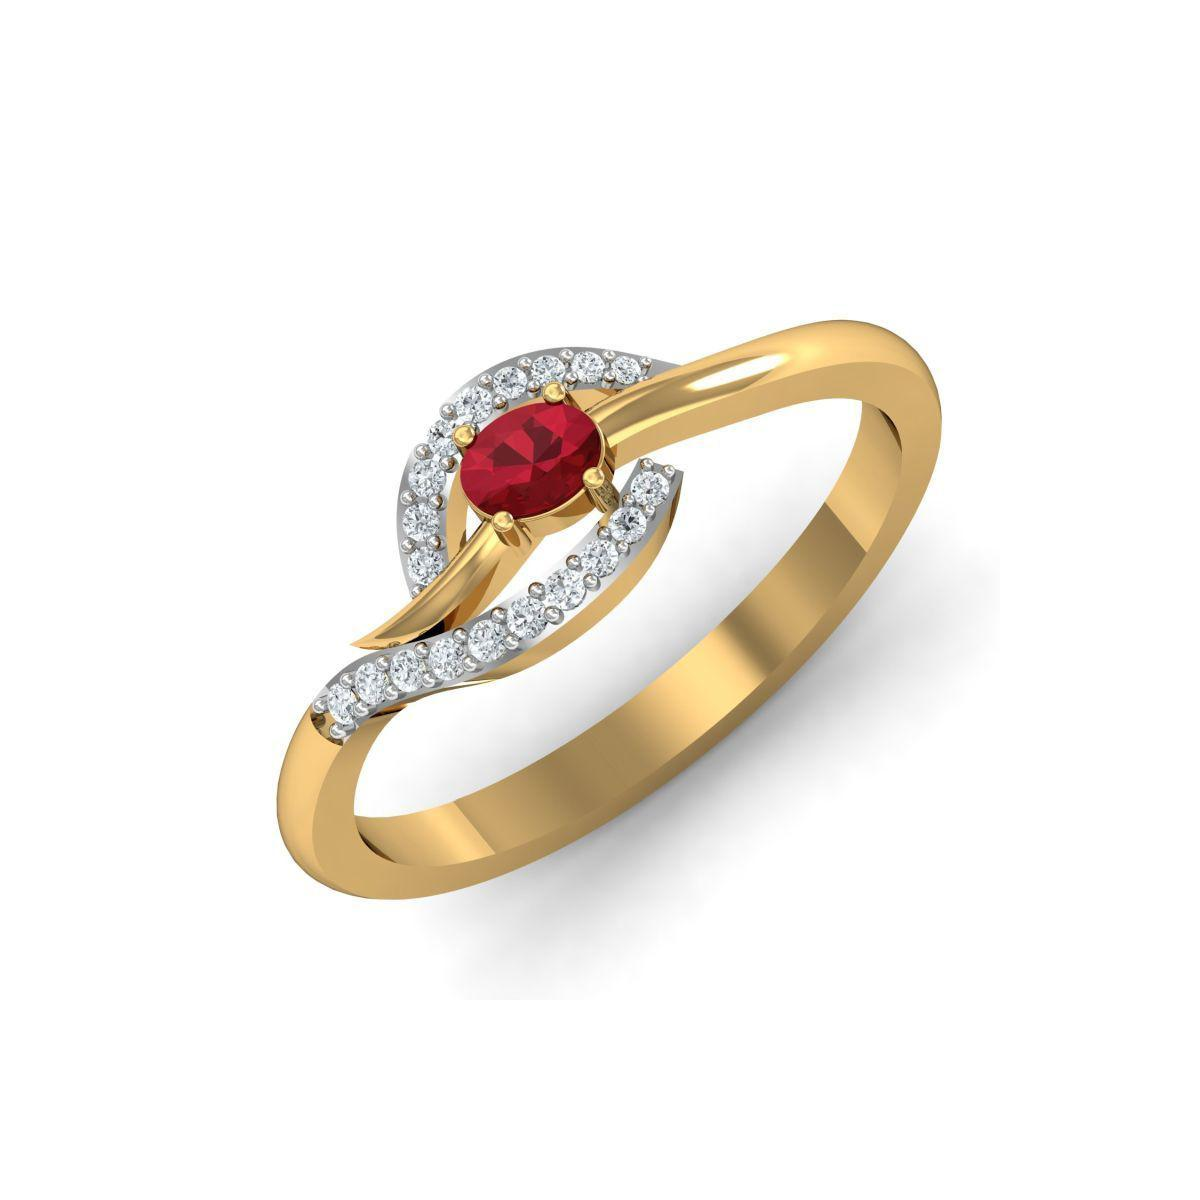 Diamoire Jewels 18kt Yellow Gold Pave 0.17ct Diamond Infinity Ring With Ruby - UK G 1/4 - US 3 1/2 - EU 45 3/4 3rhlmlmU